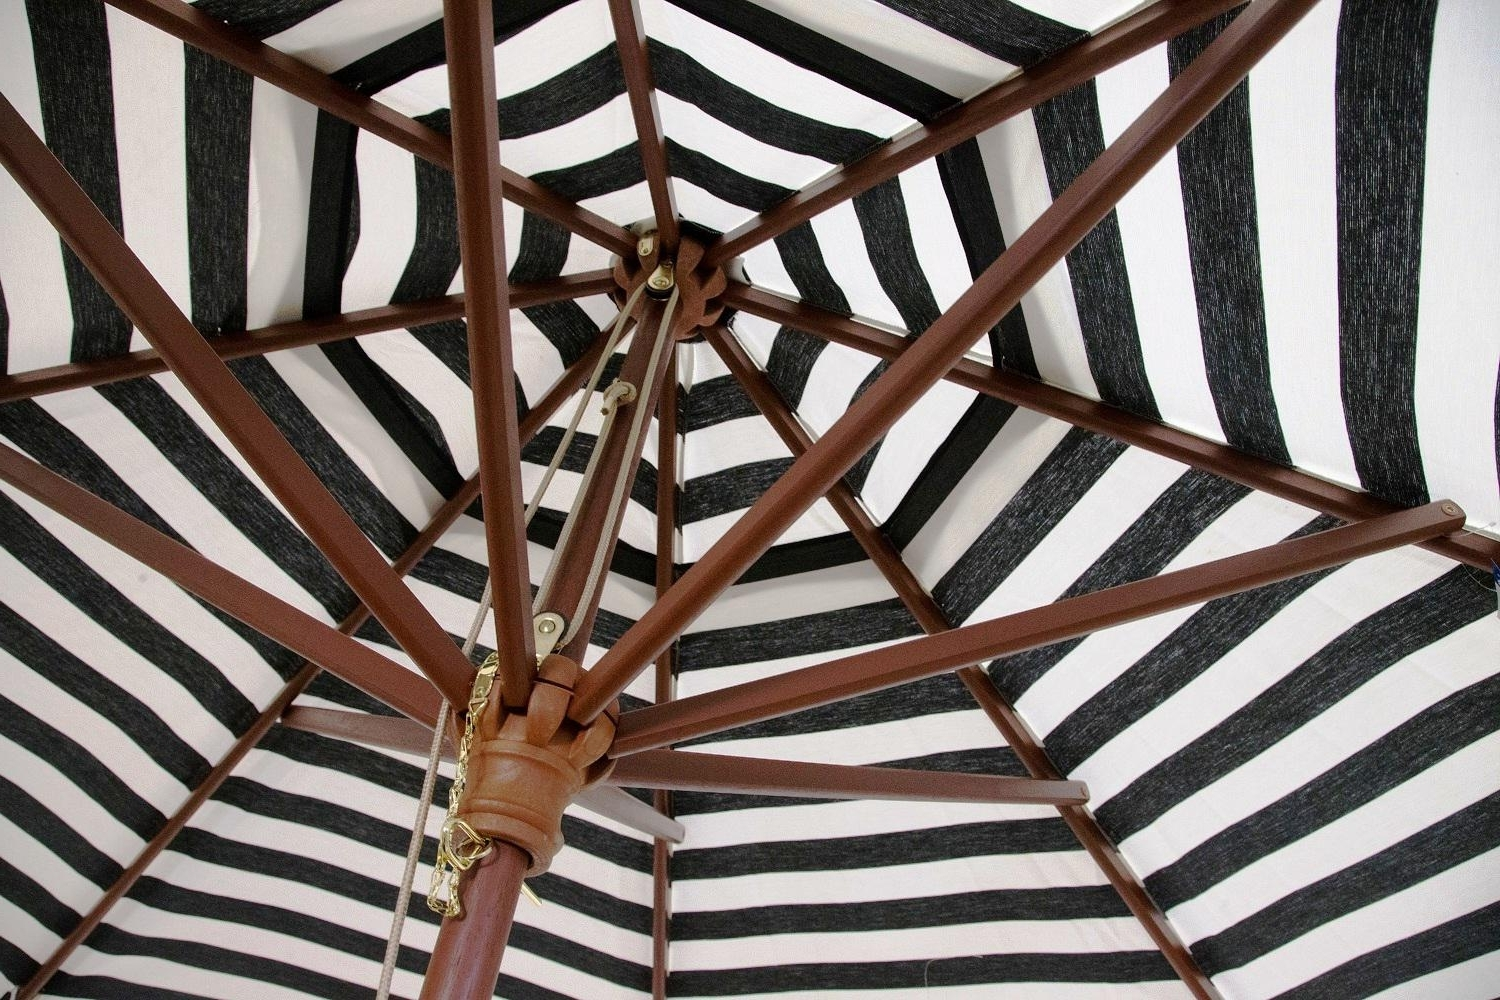 Most Current Black And White Striped Patio Umbrellas Inside Black And White Striped Outdoor Patio Umbrella — The Mebrureoral (View 11 of 20)